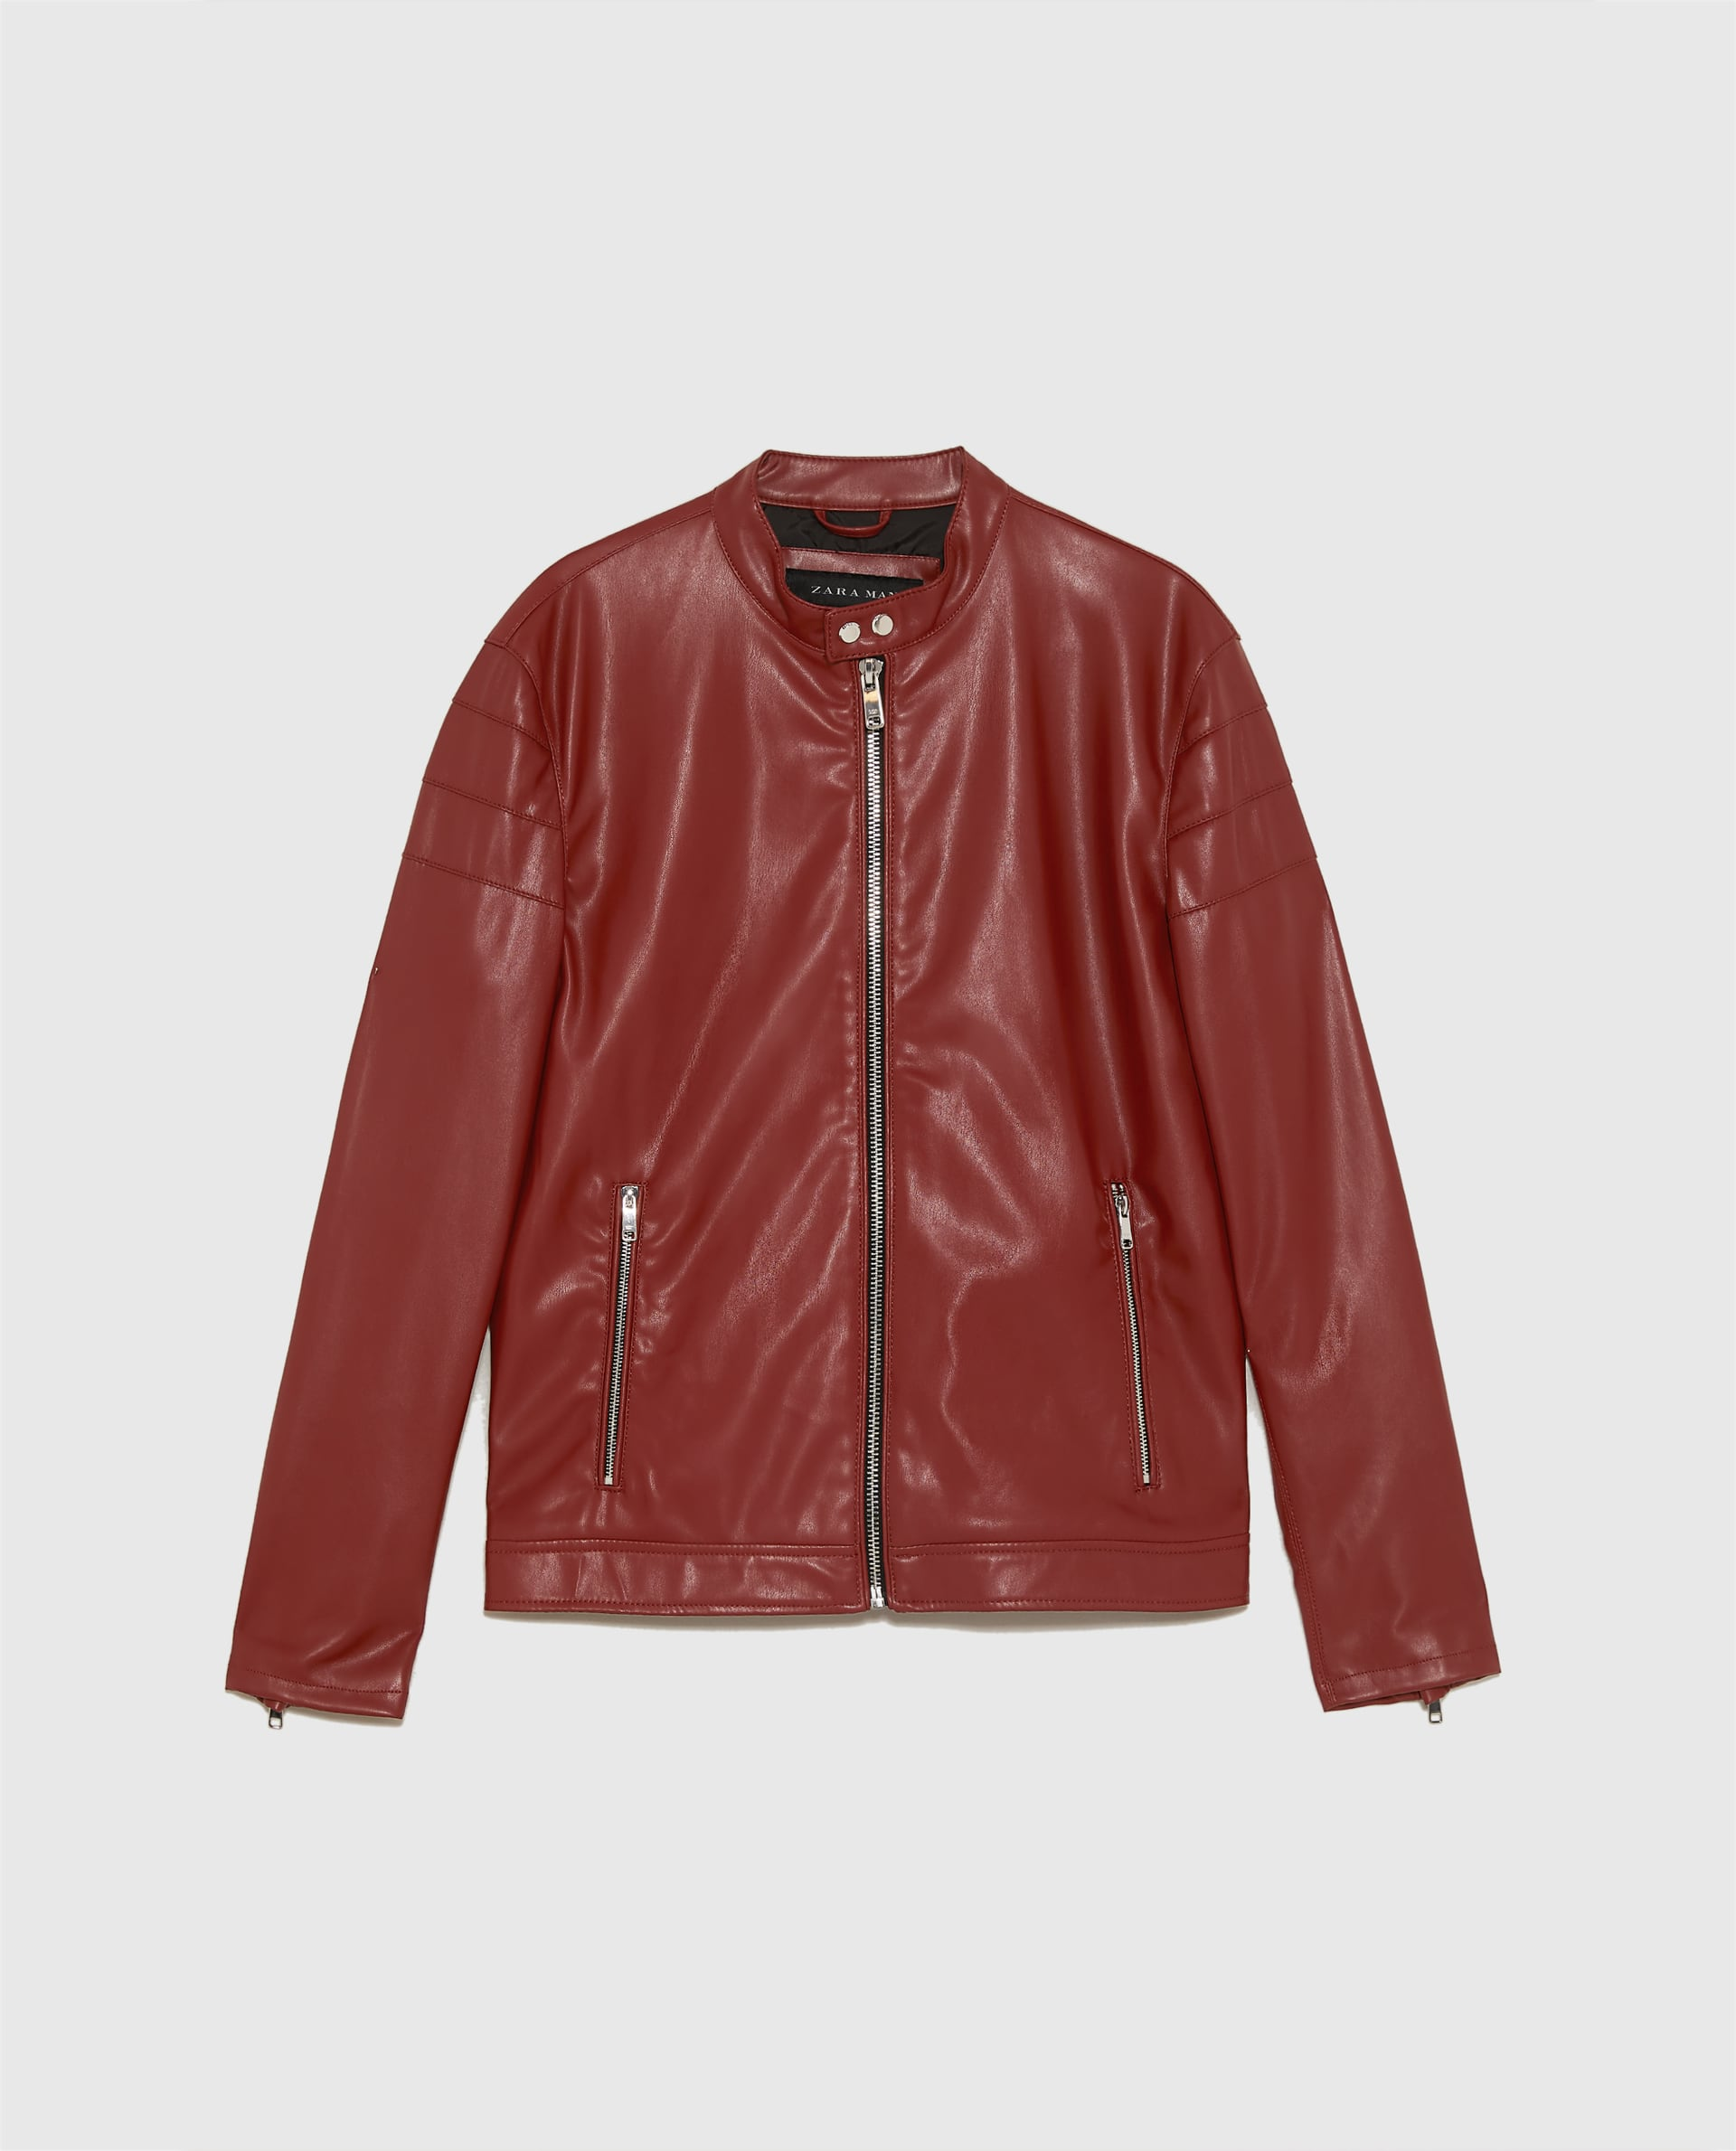 Red leather biker jacket - £49.99 at Zara